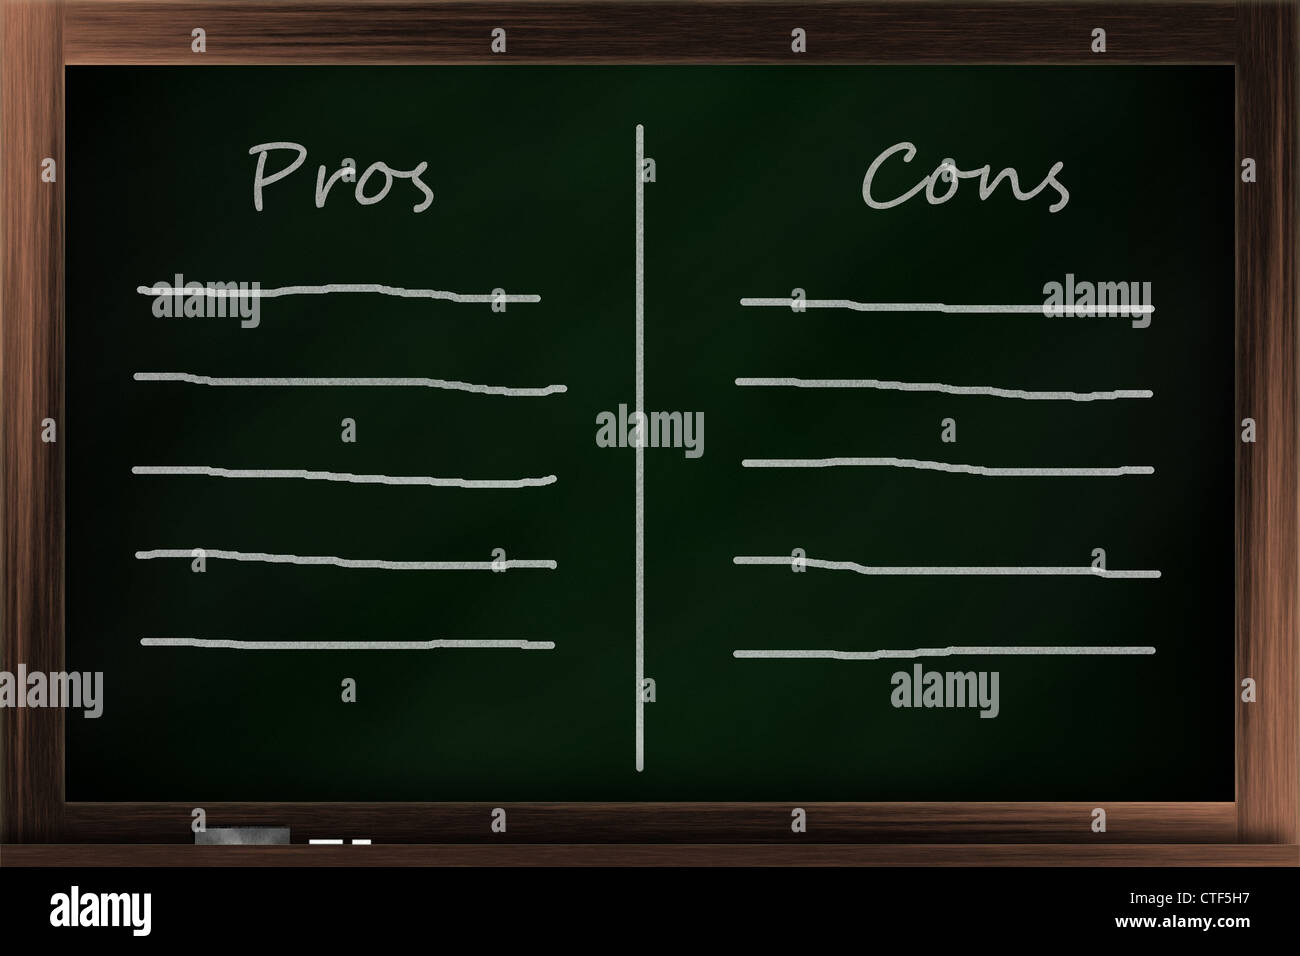 Classroom Chalkboard With Pros Cons List Stock Photo 49506163 Alamy